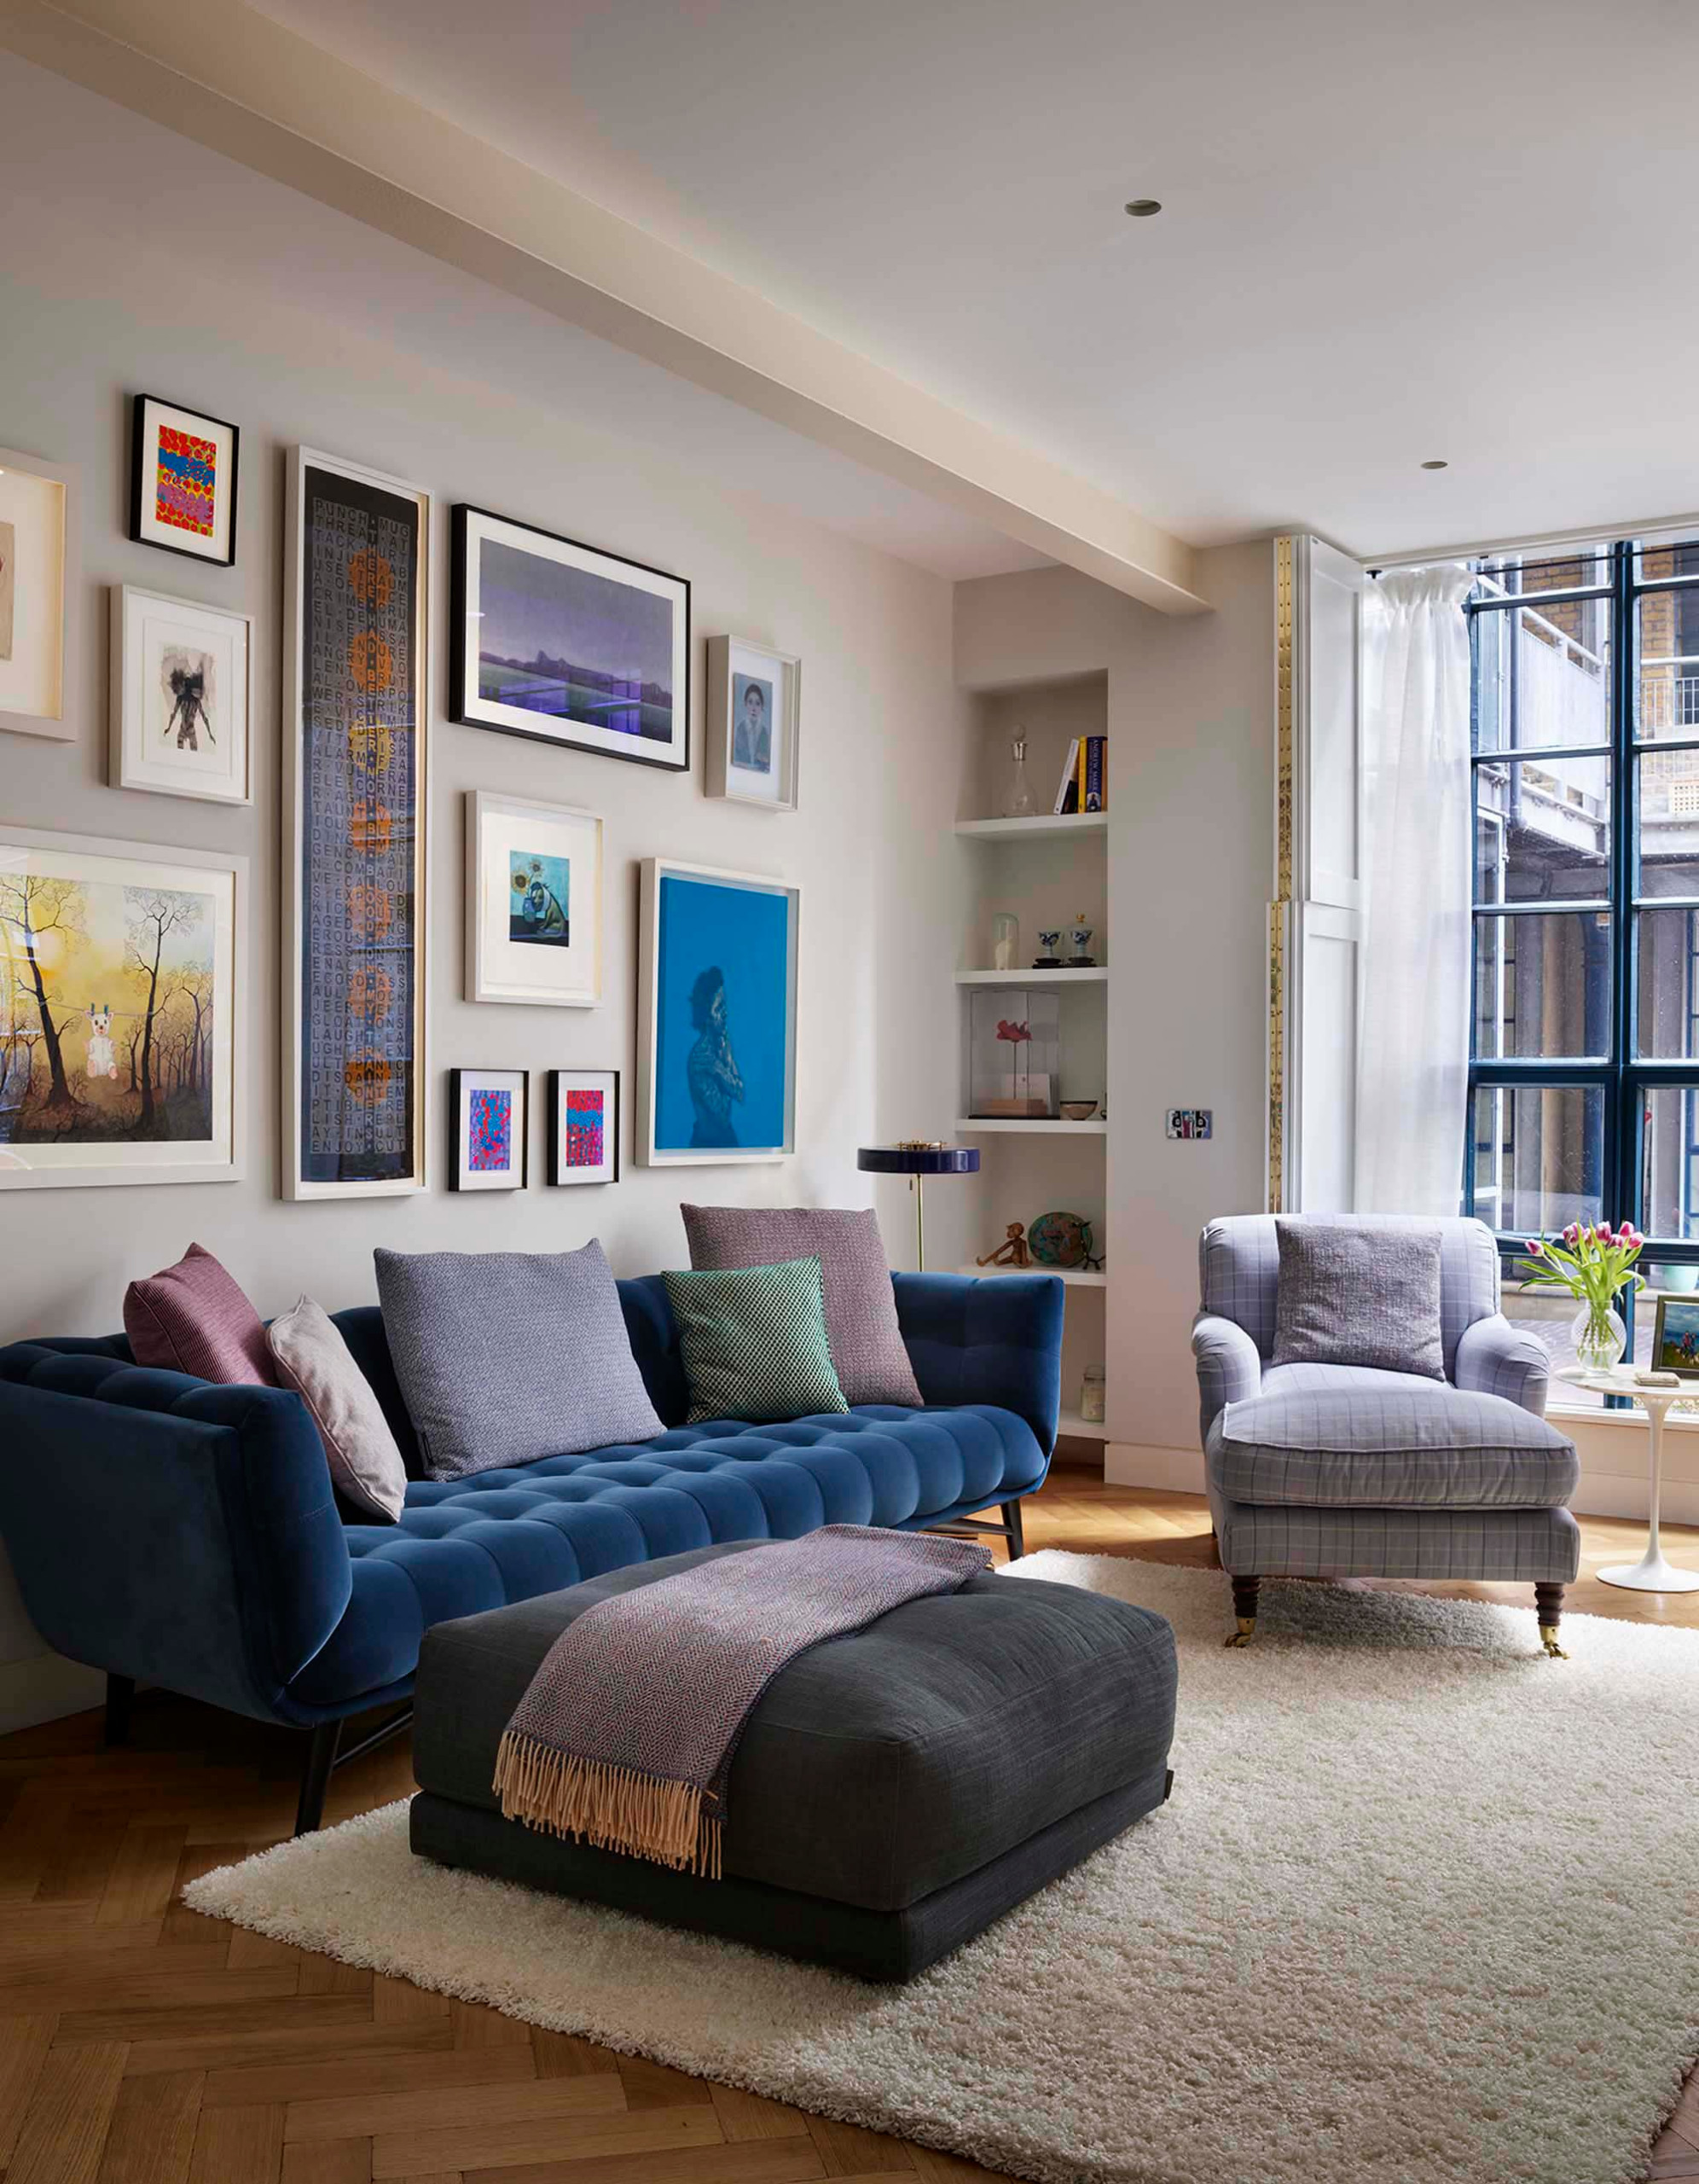 75 Beautiful Industrial Living Room Pictures Ideas February 2021 Houzz